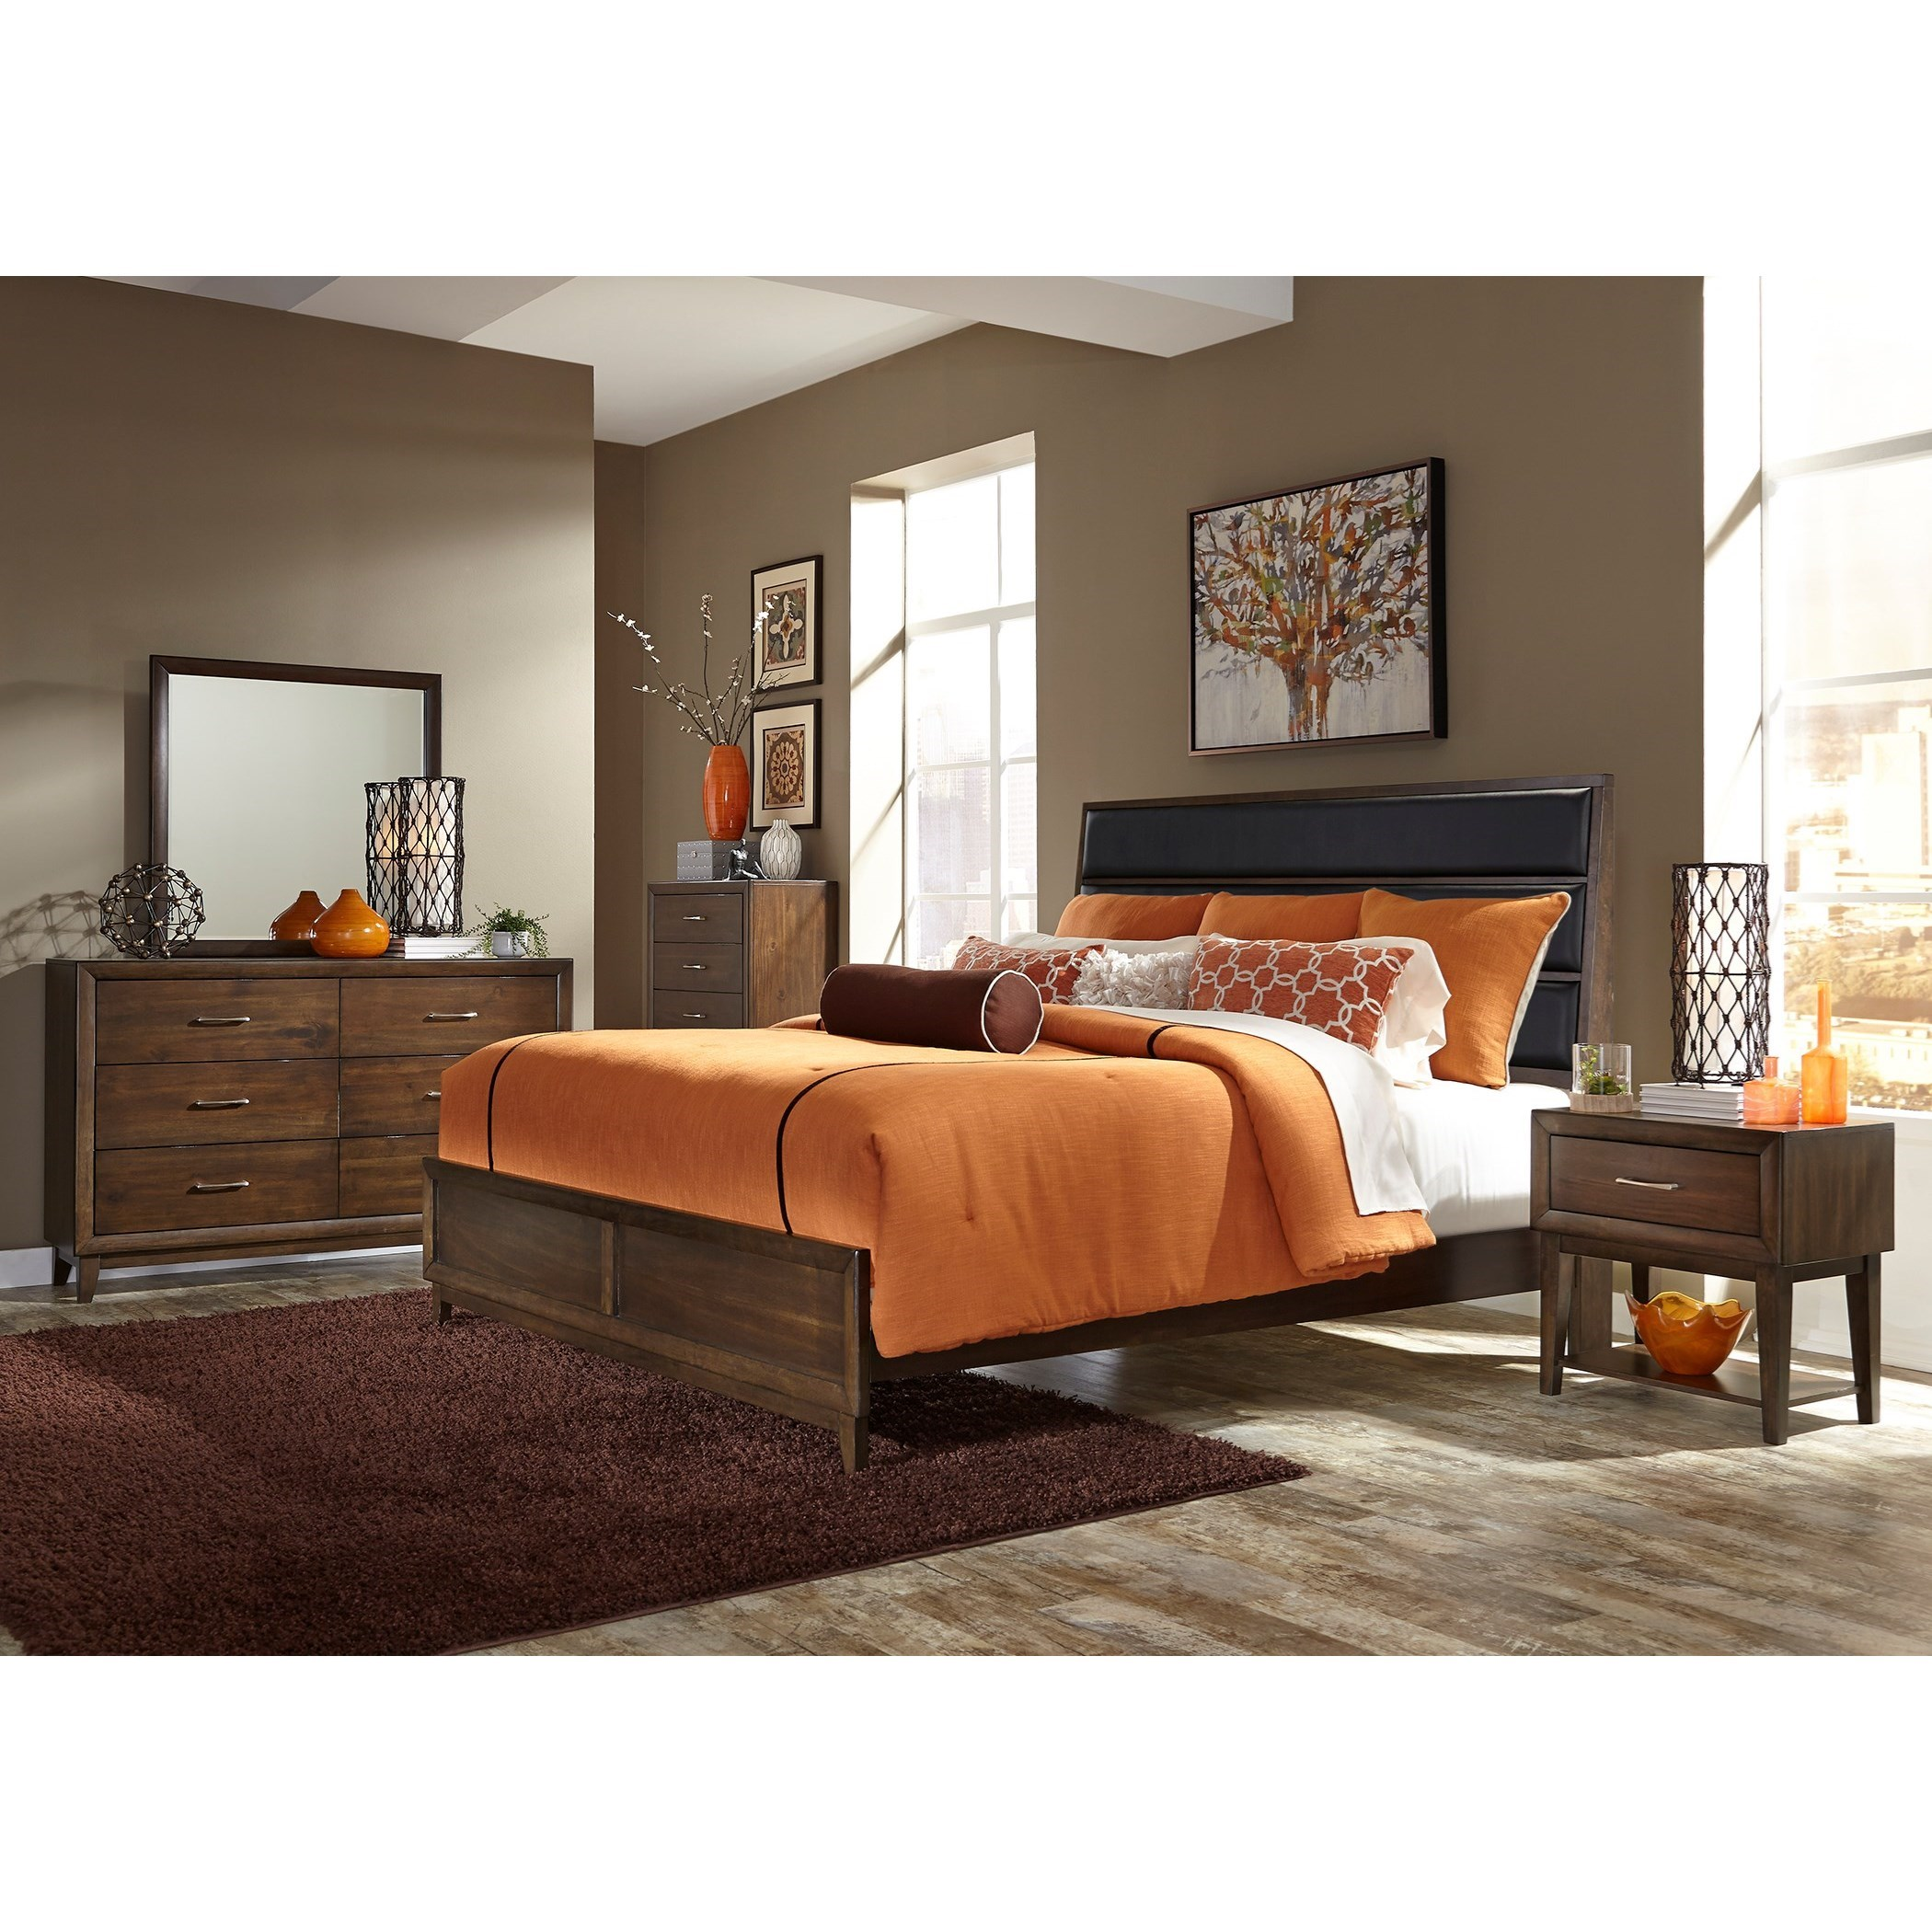 Liberty Furniture Hudson Square Bedroom 365 Br61 1 Drawer Night Stand With Shelf Furniture And